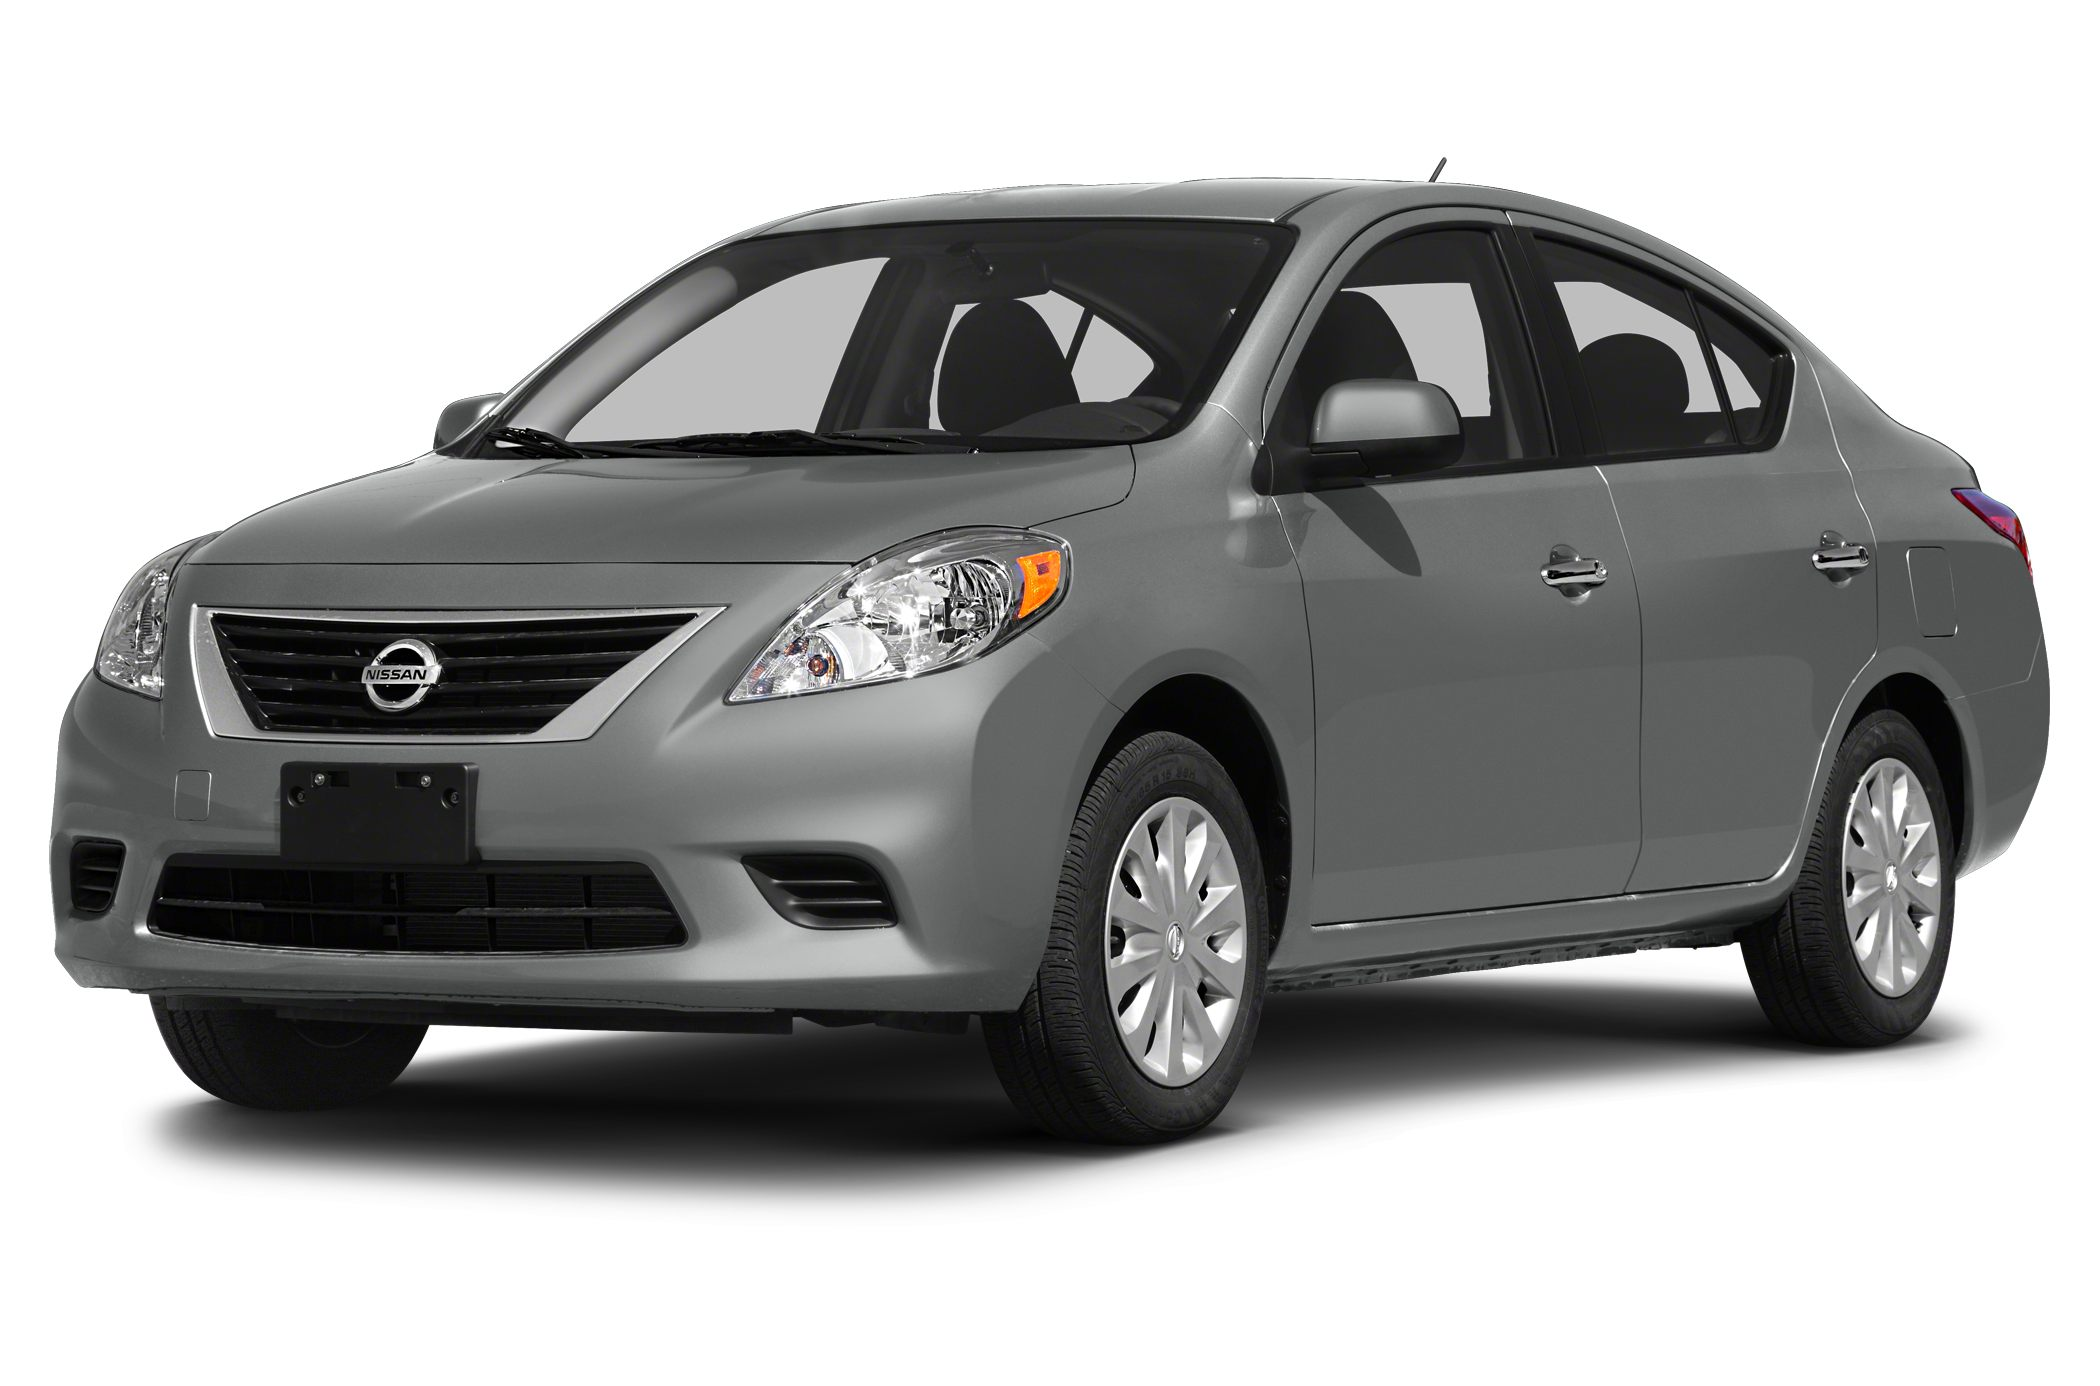 2014 Nissan Versa 1.6 SV Sedan for sale in Zanesville for $11,995 with 35,638 miles.